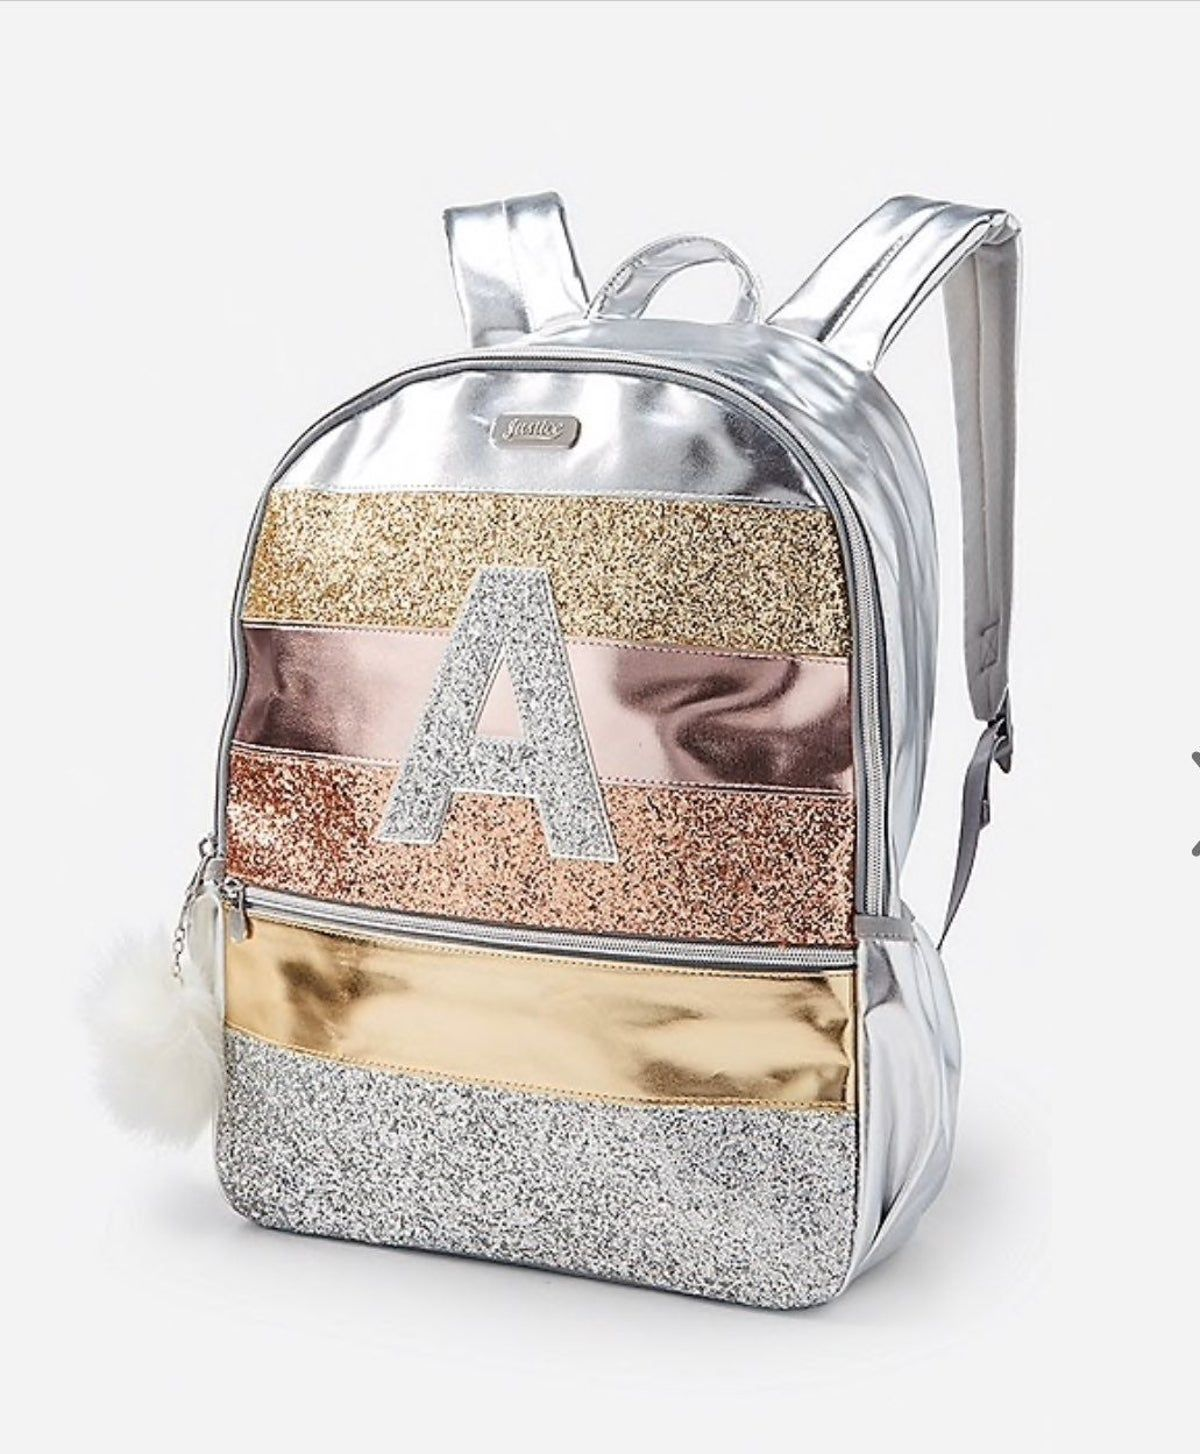 Justice Backpack And Lunch Tote M Letter Justice Bags Kids Purse Stylish Backpacks